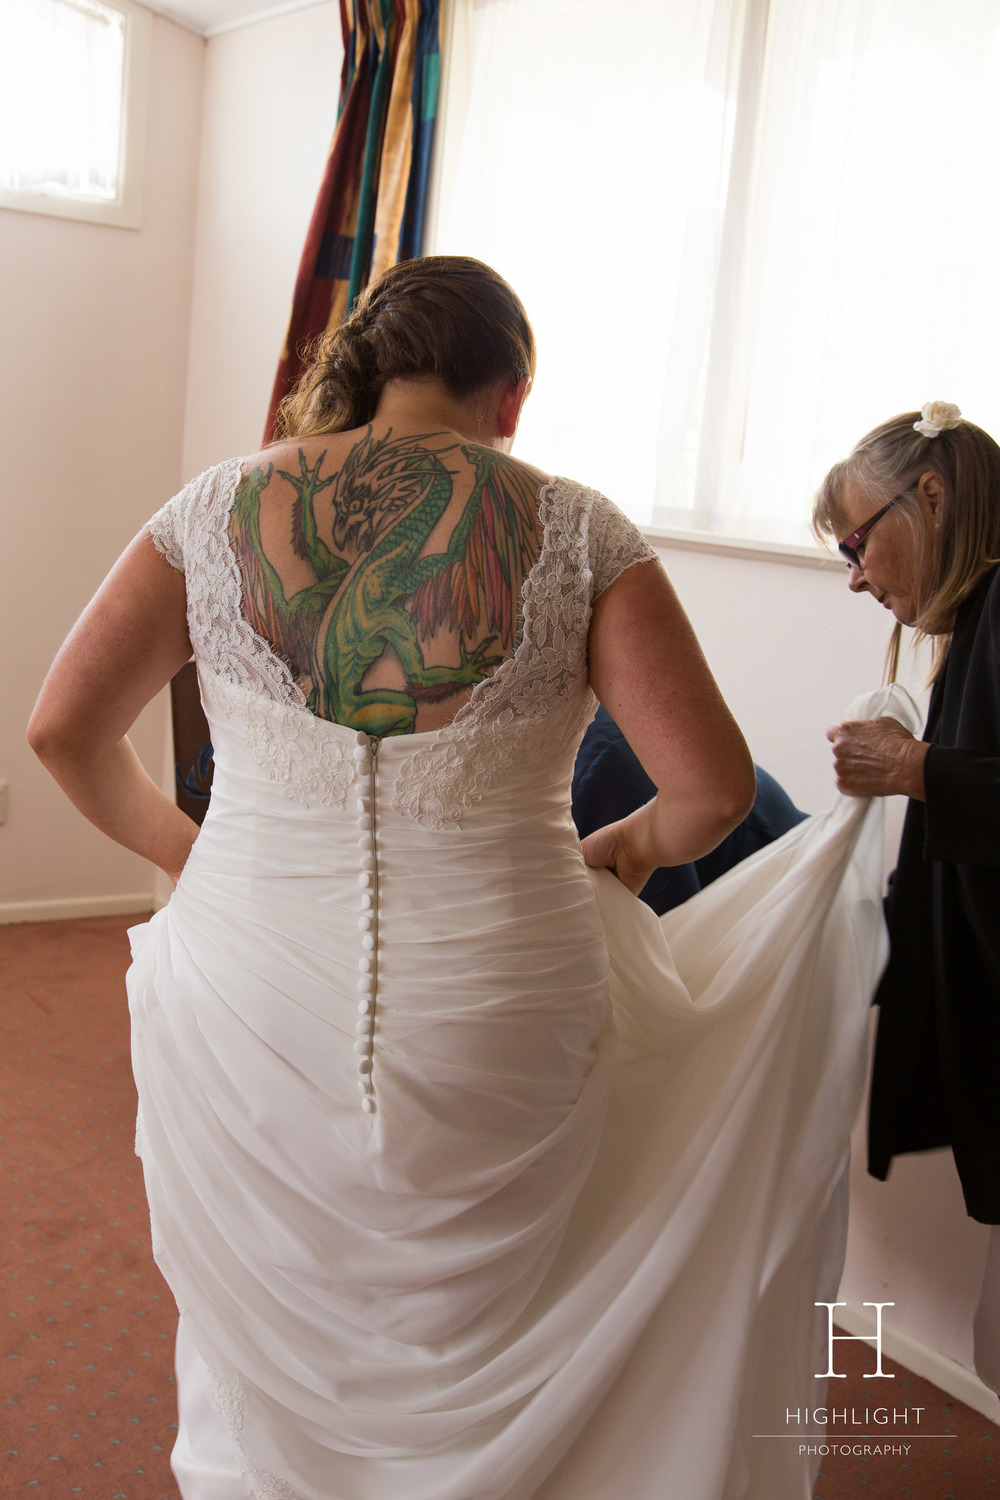 highlight-photography-nz-wedding-bride.jpg